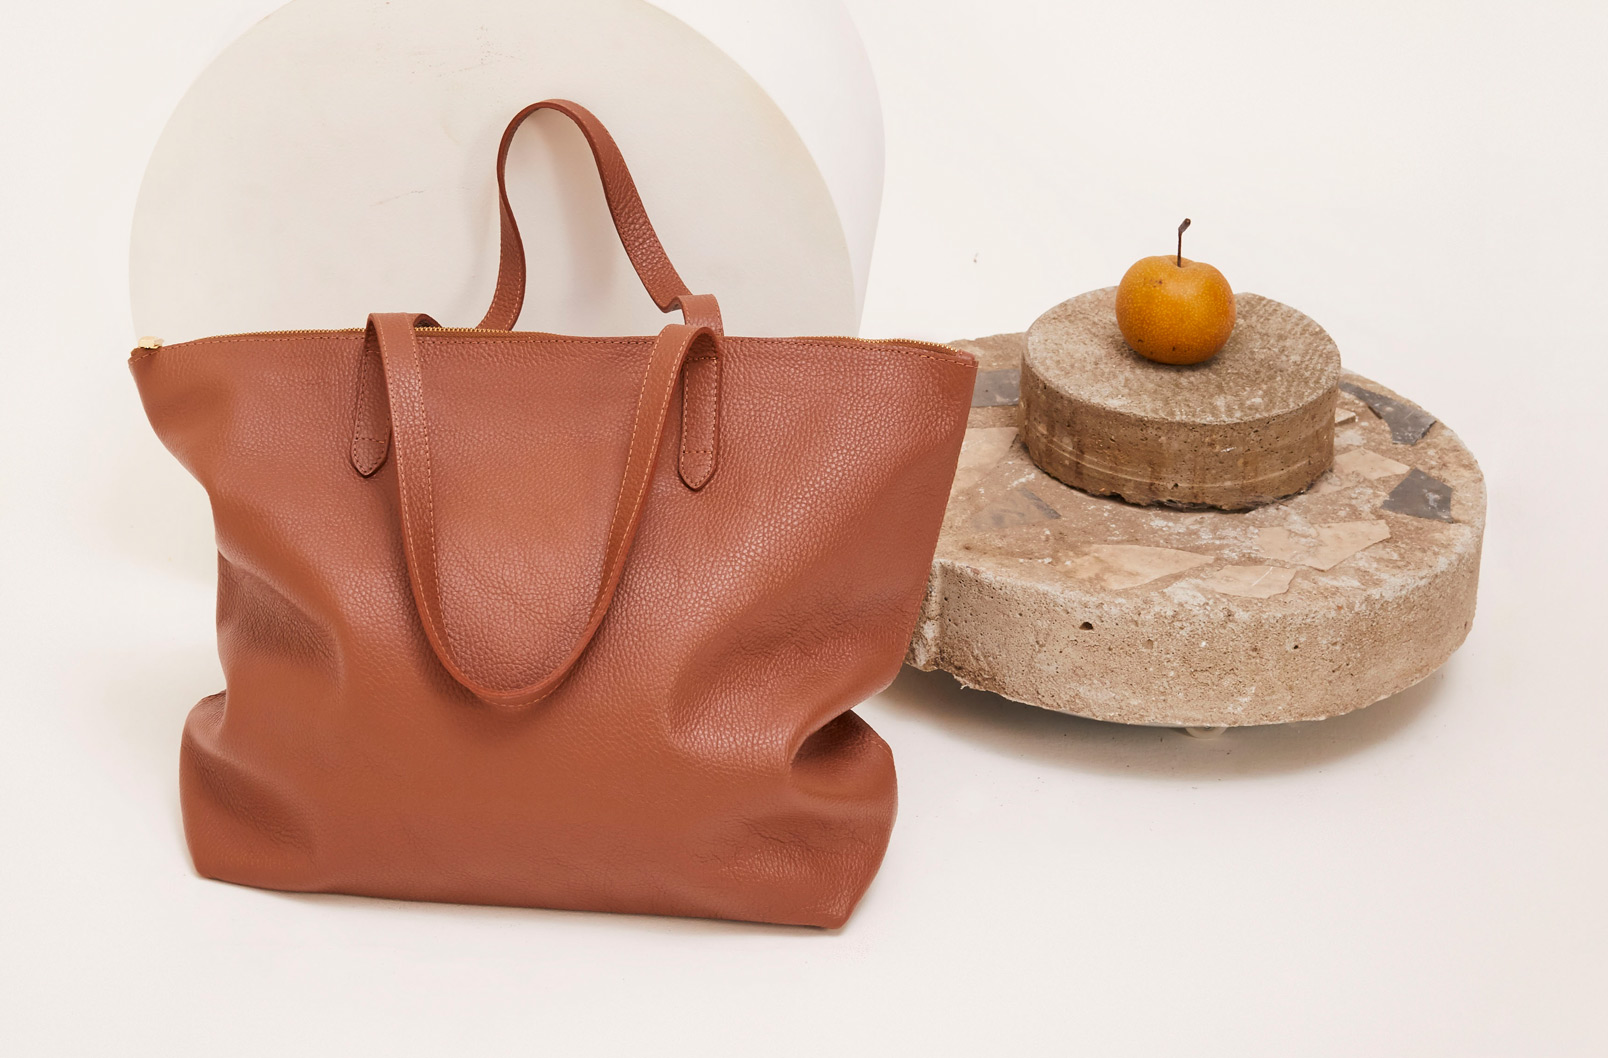 Cuyana Classic Leather Zipper Tote in Caramel with Stone